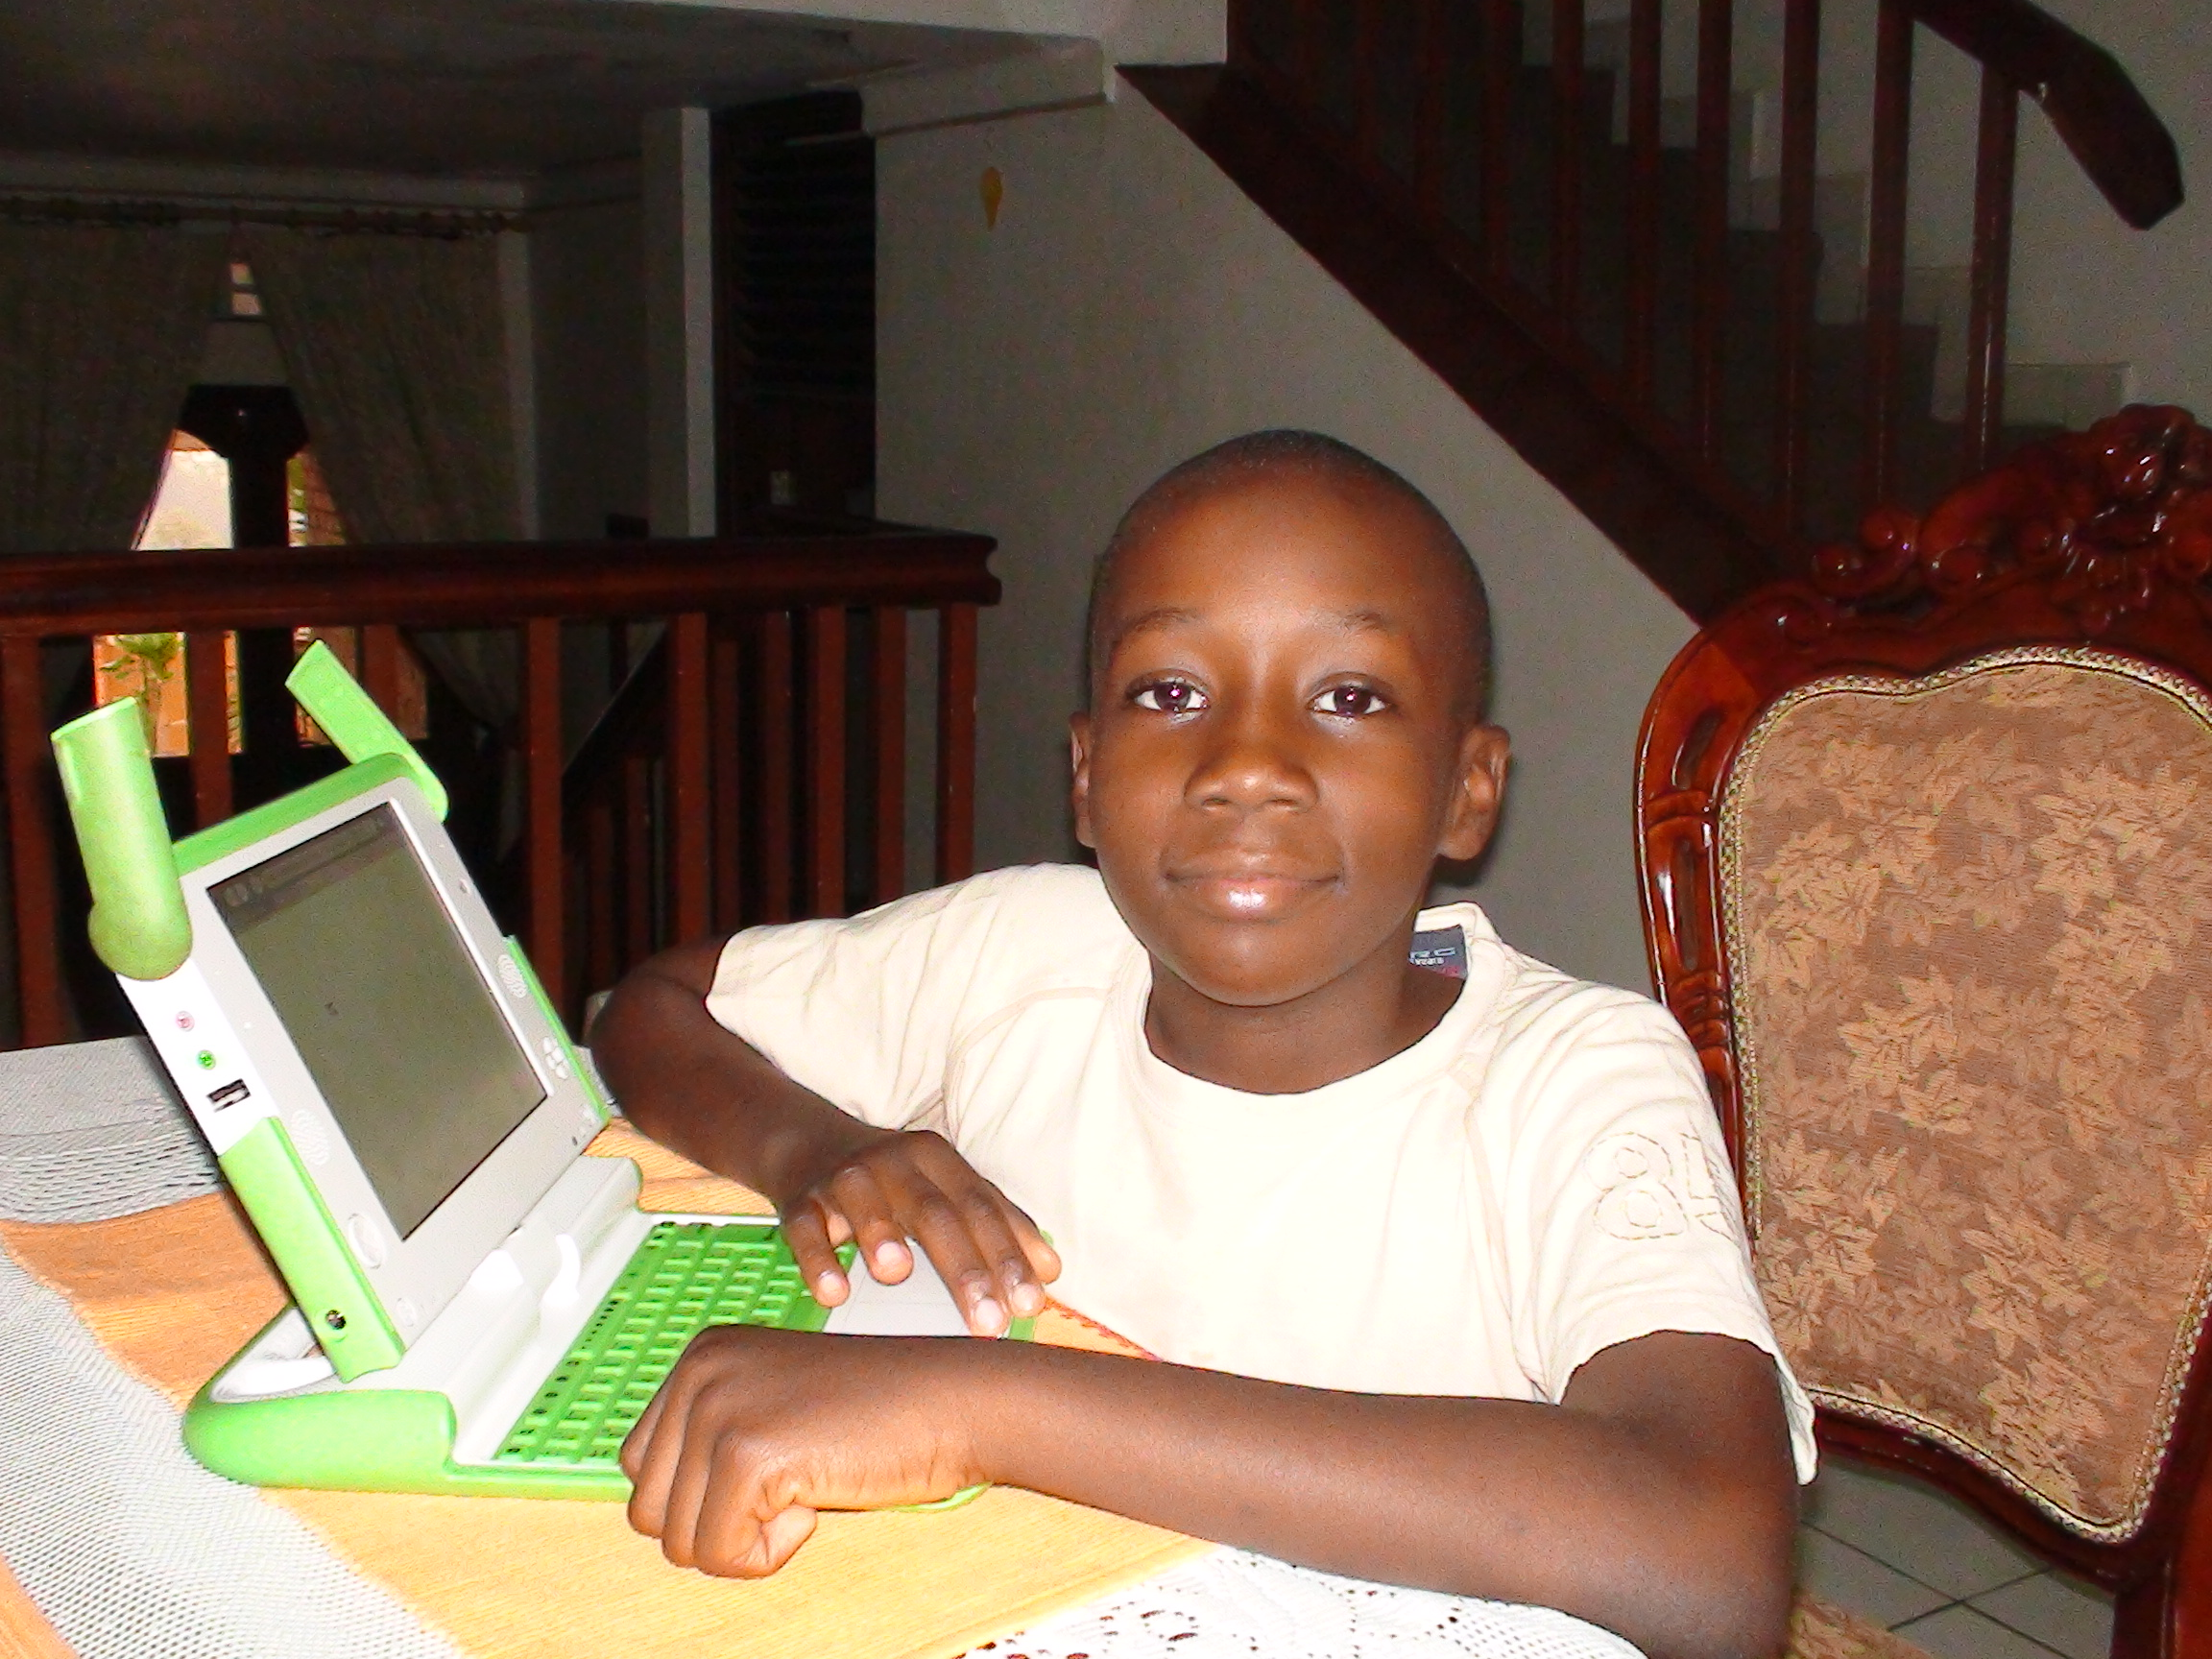 Collin Kabagambe with his laptop